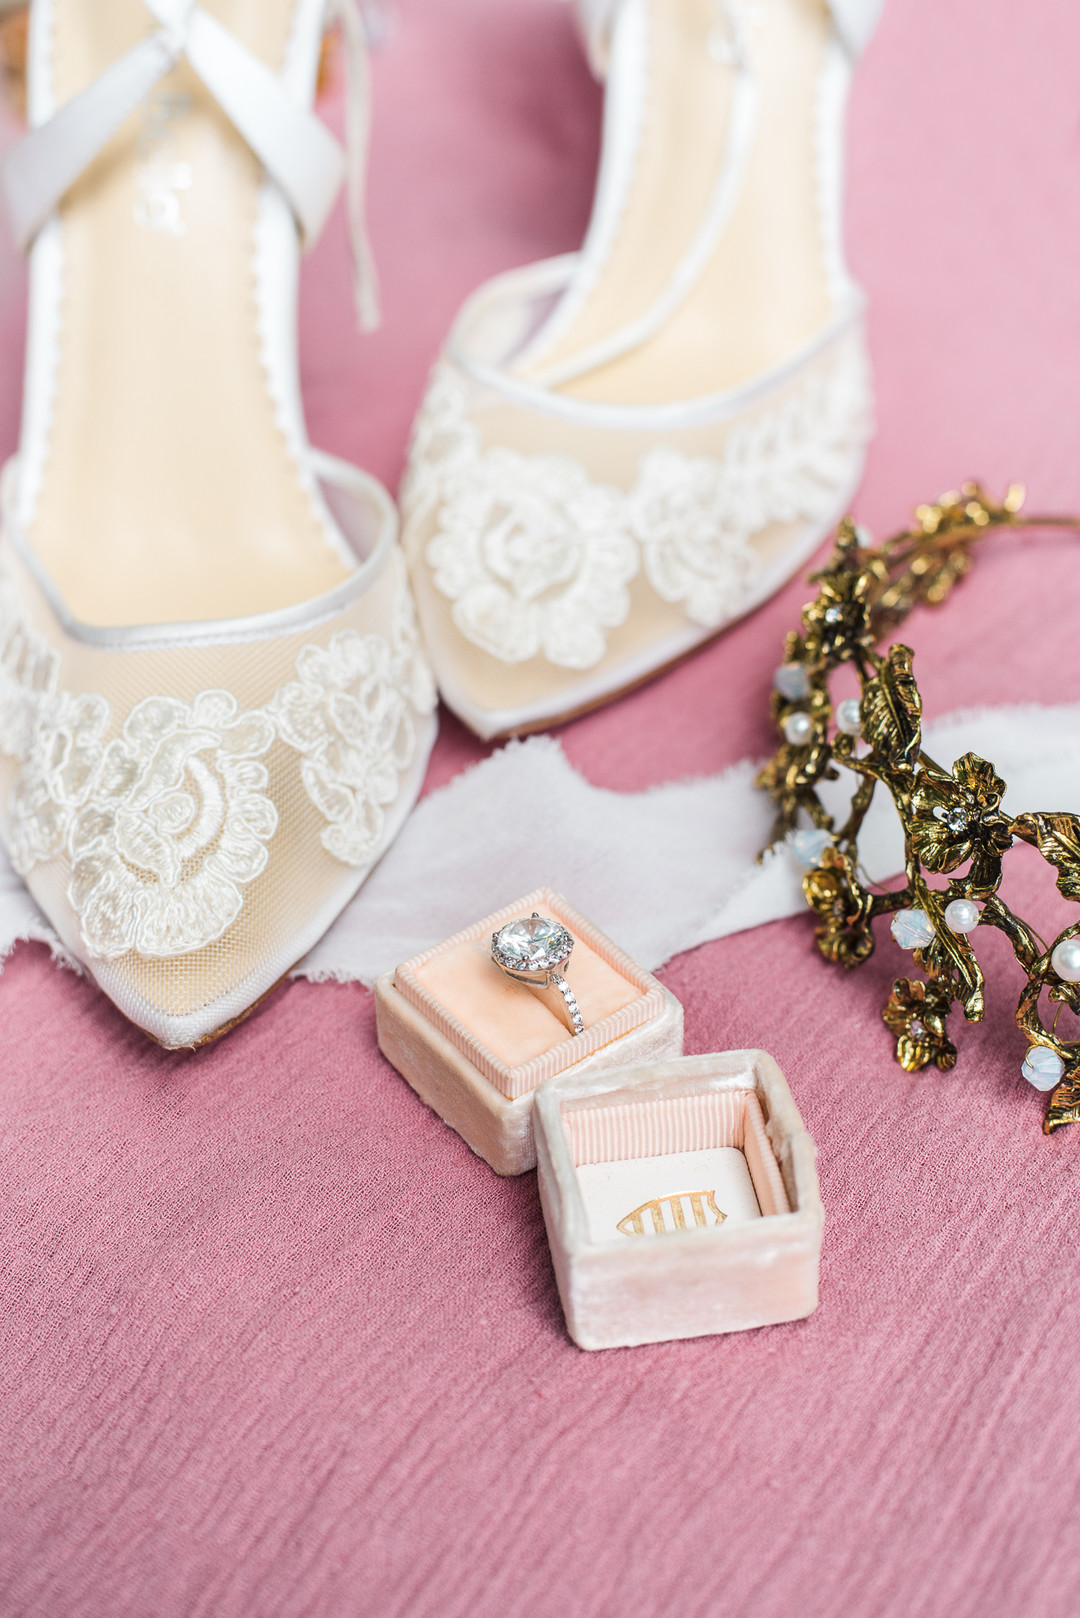 bella belle lace applique illusion shoes, antique gold crown and a blush ring box